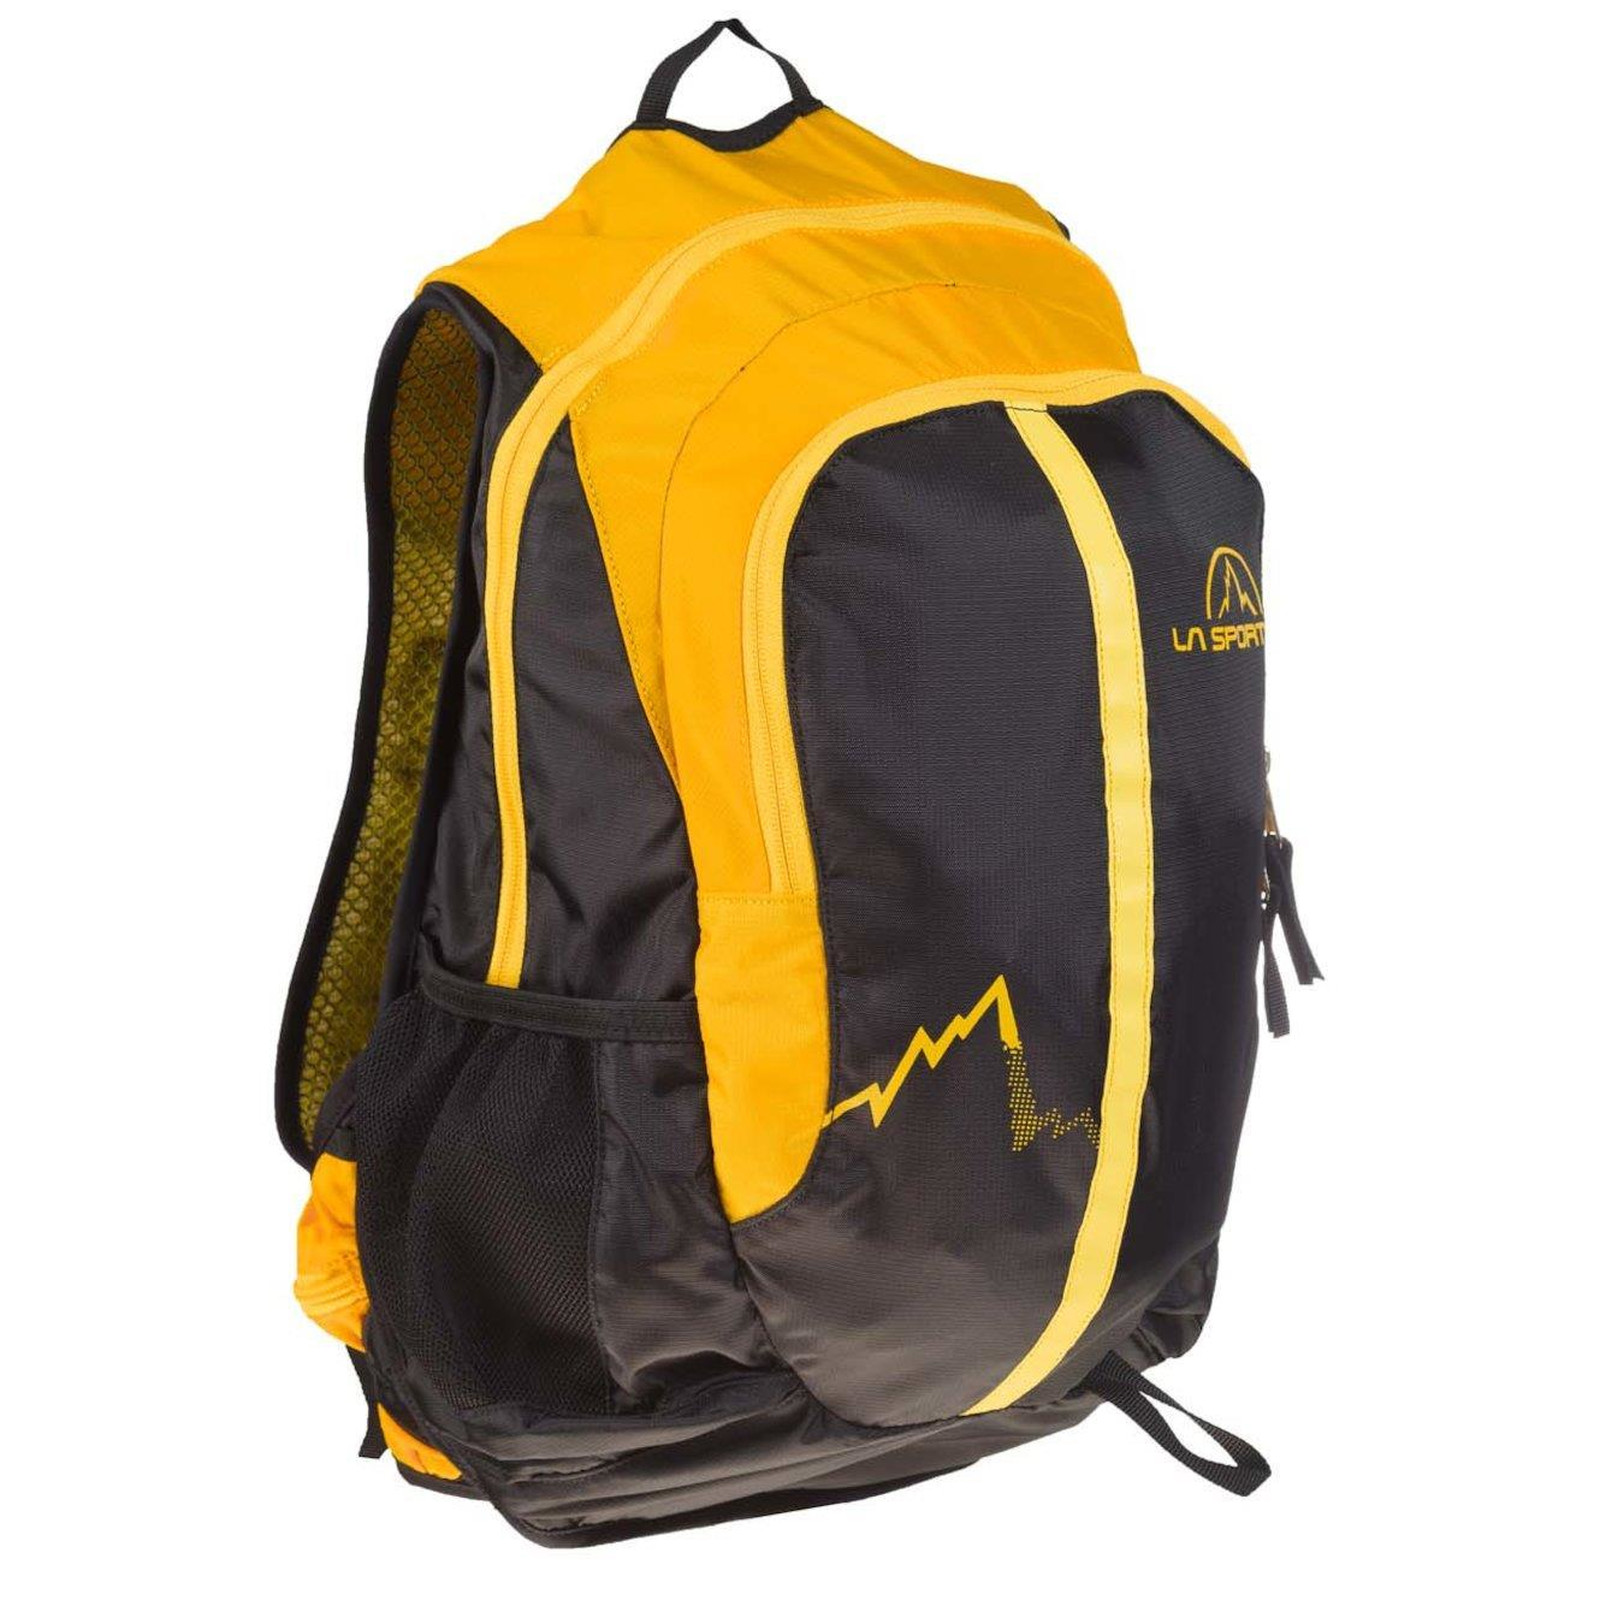 LA SPORTIVA BACKPACK A.T. 30 YELLOW